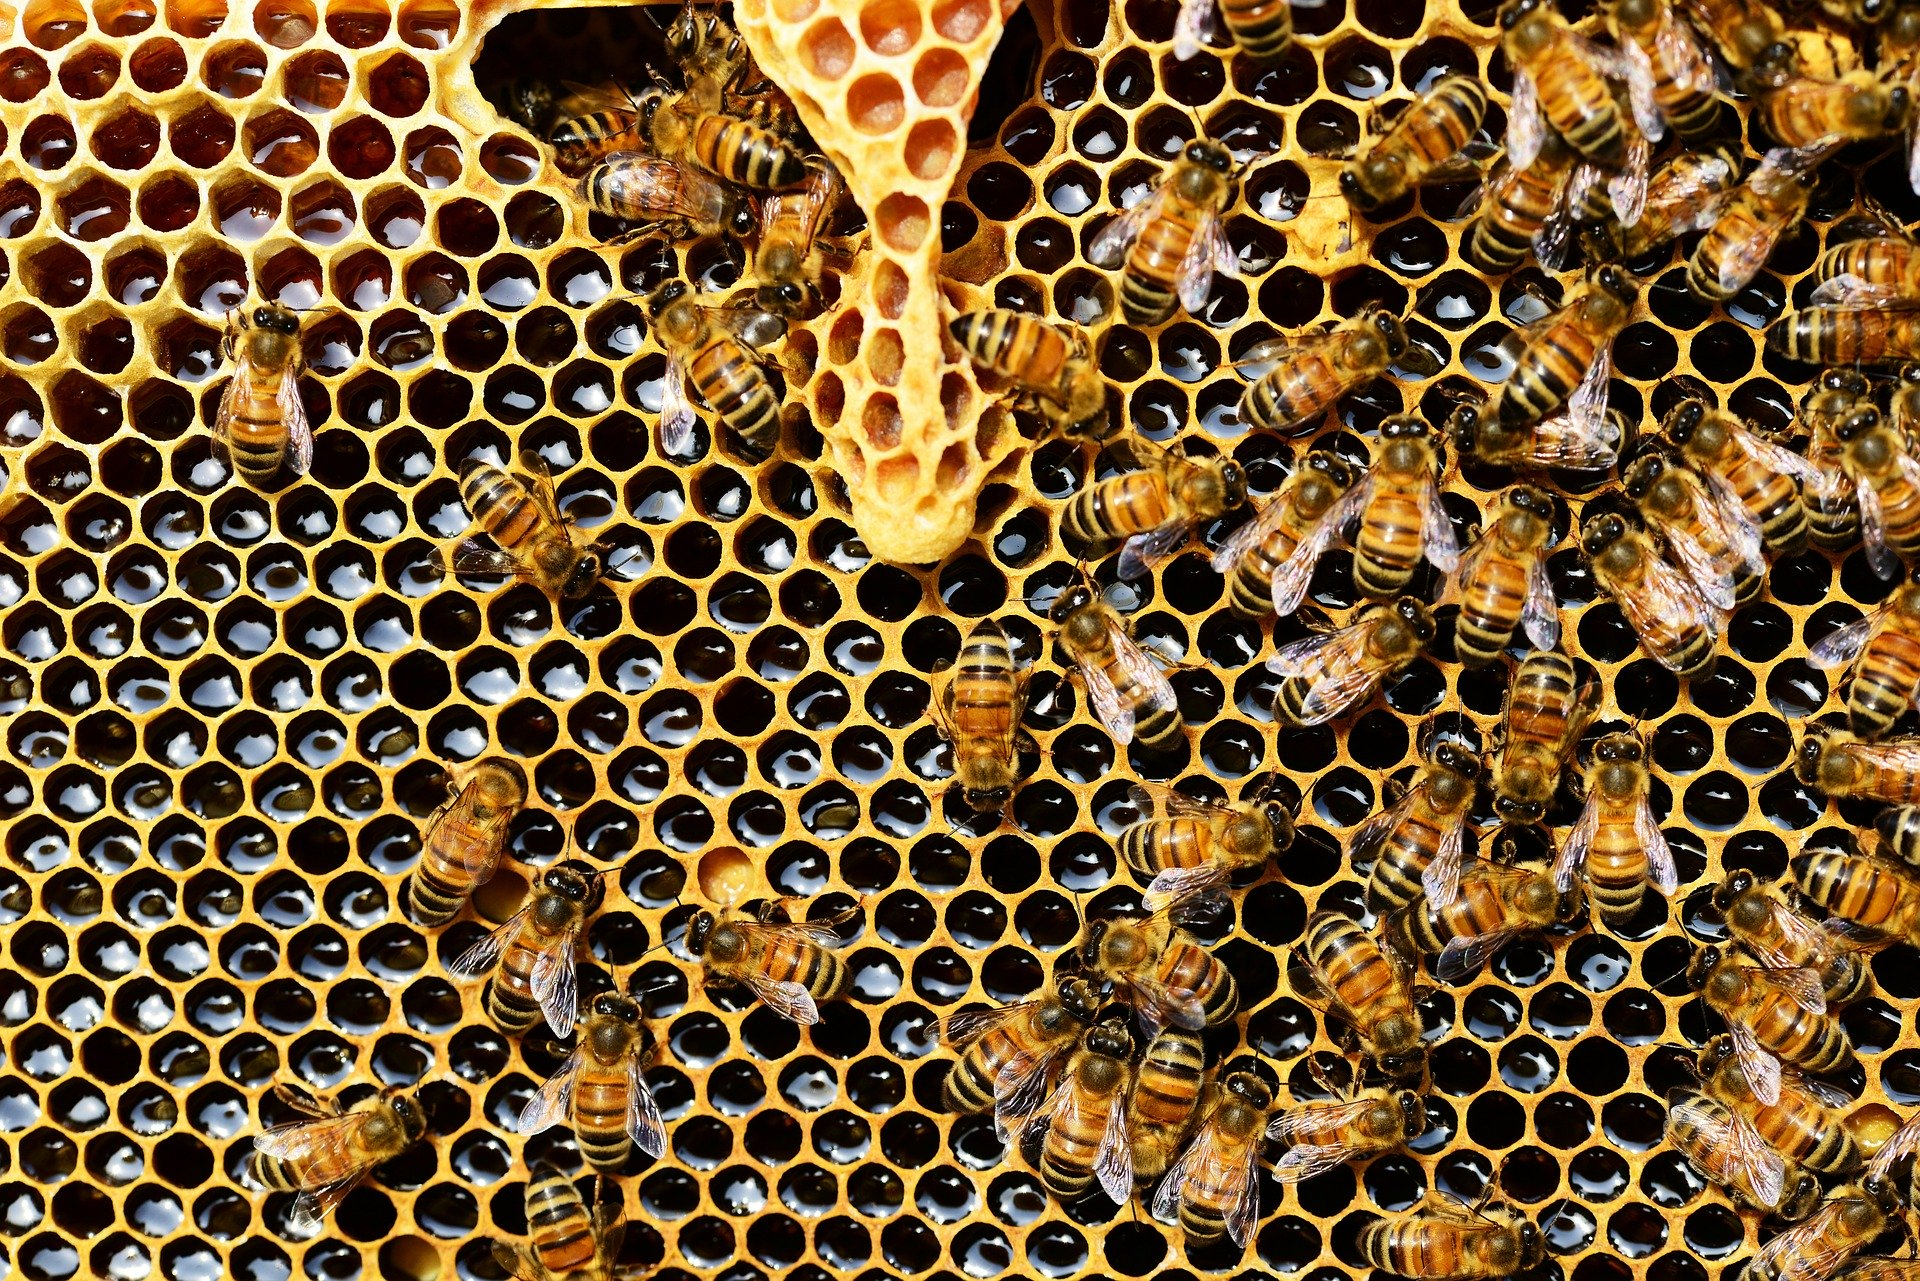 Israel to Make Honey Without Bees